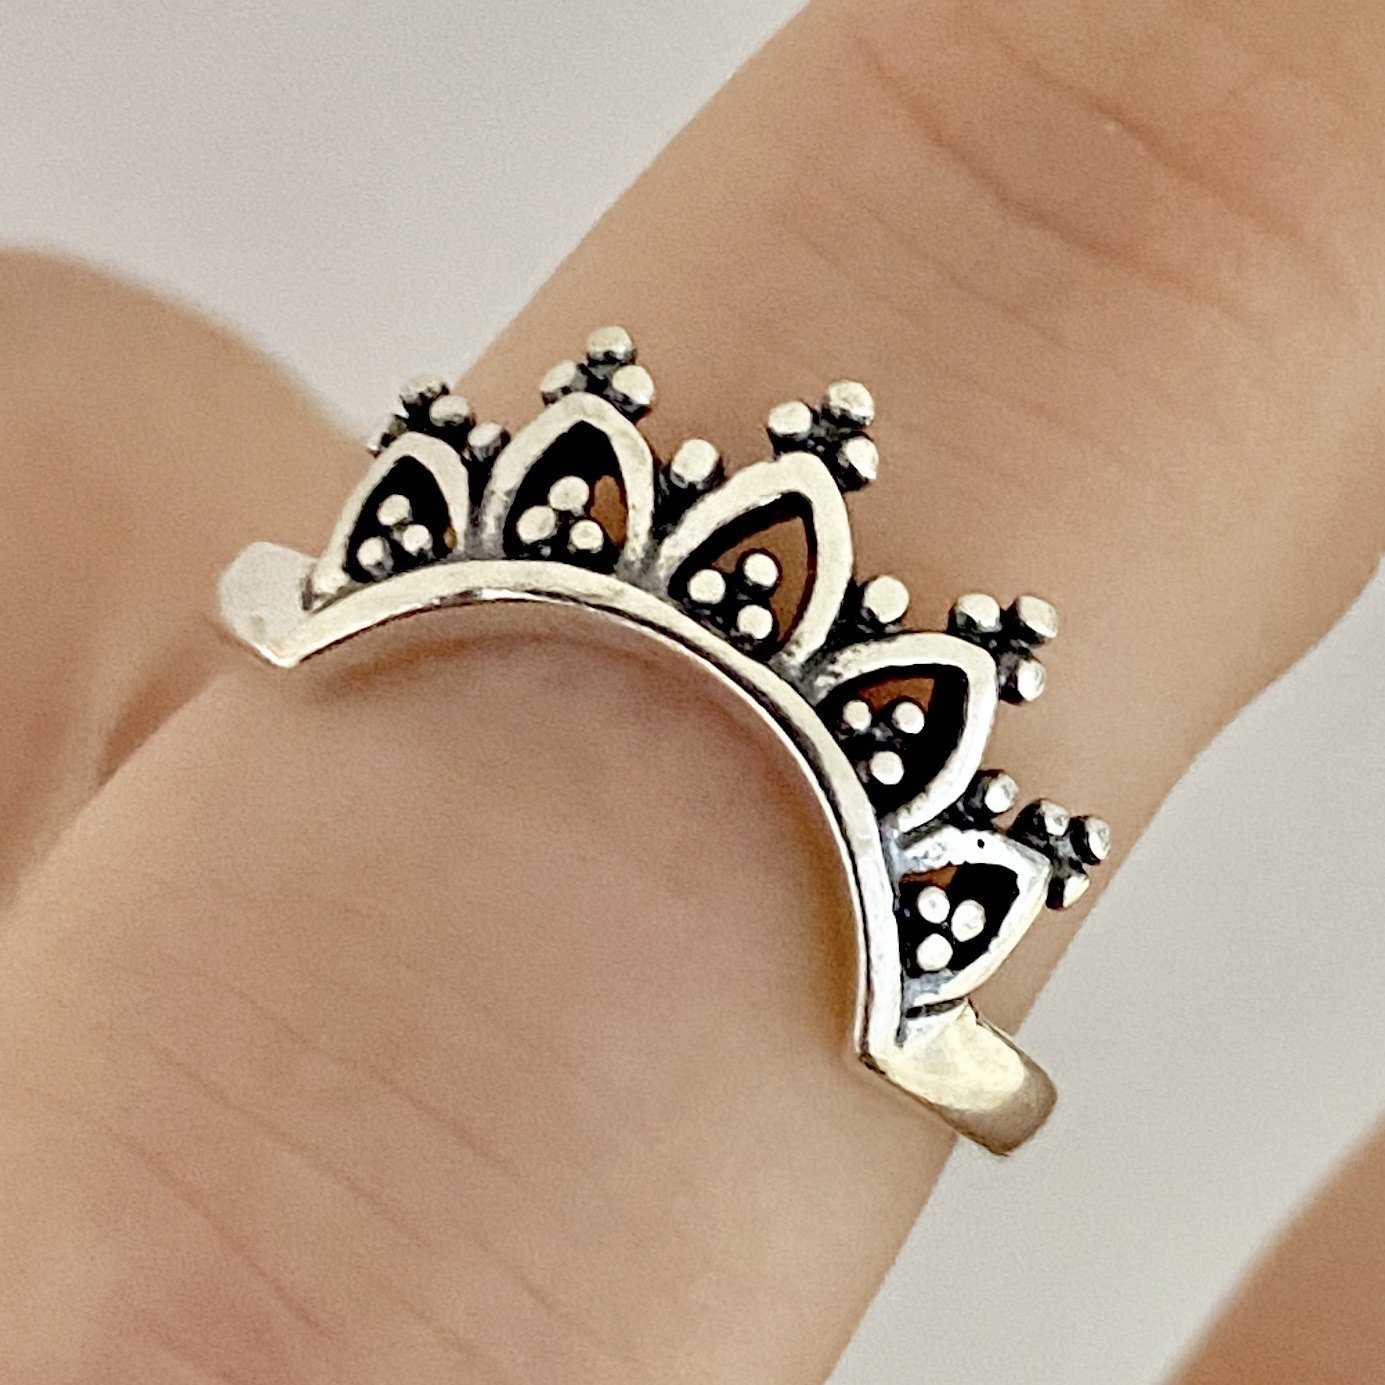 Laihas Handcrafted Romantic Crescent Boho Ring Ass sizes - Laihas Bohemian Dreaming